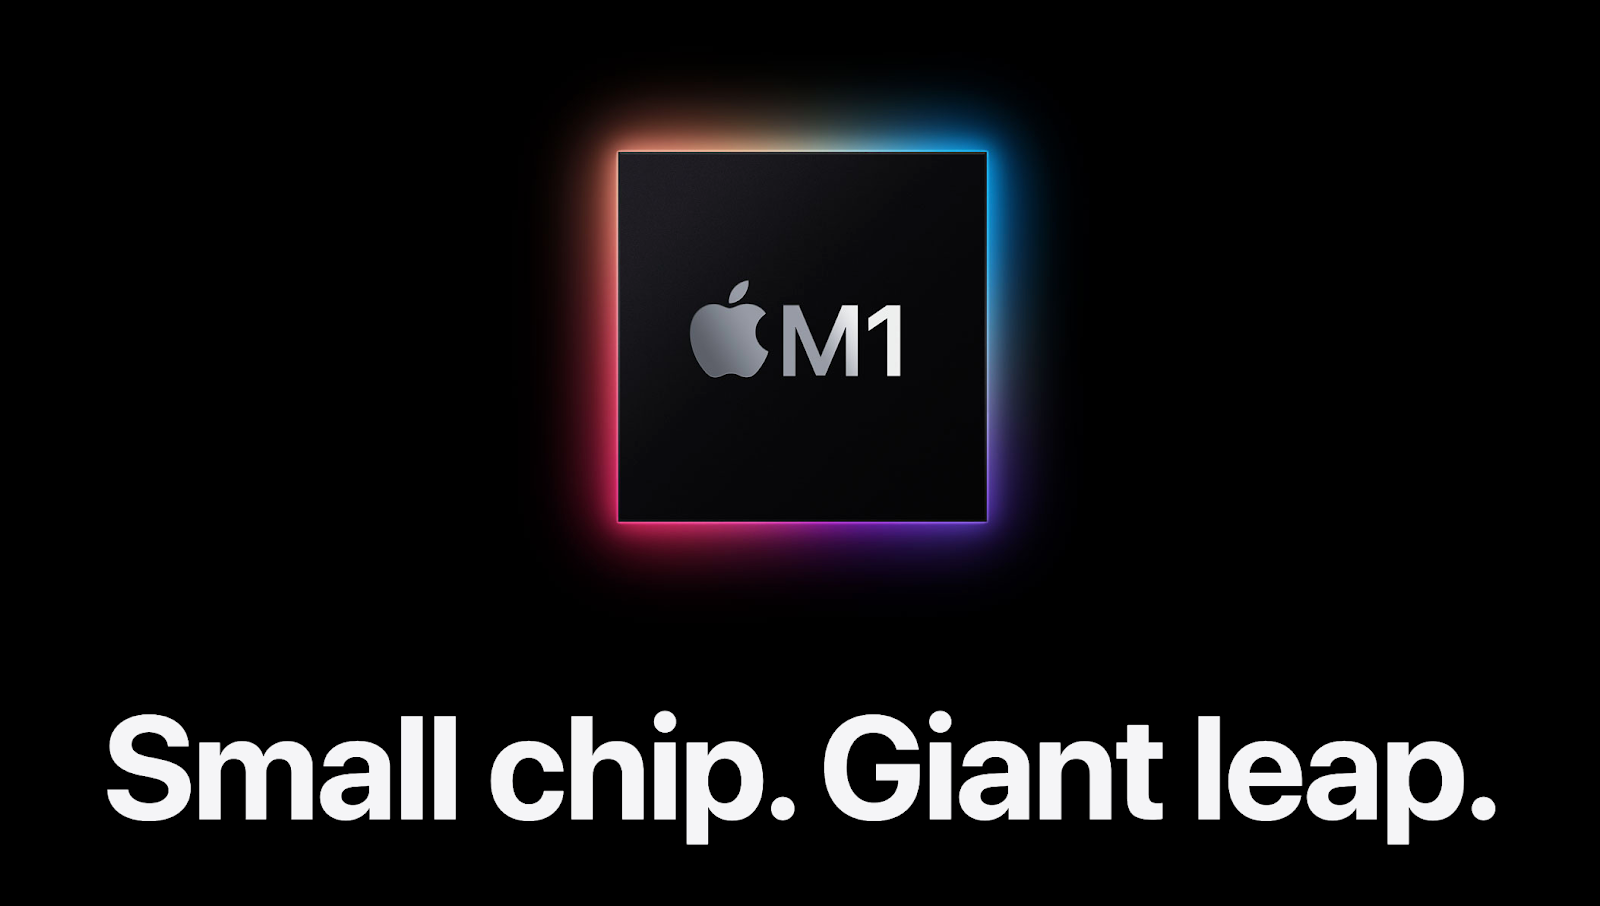 Apple Silicon M1 chip